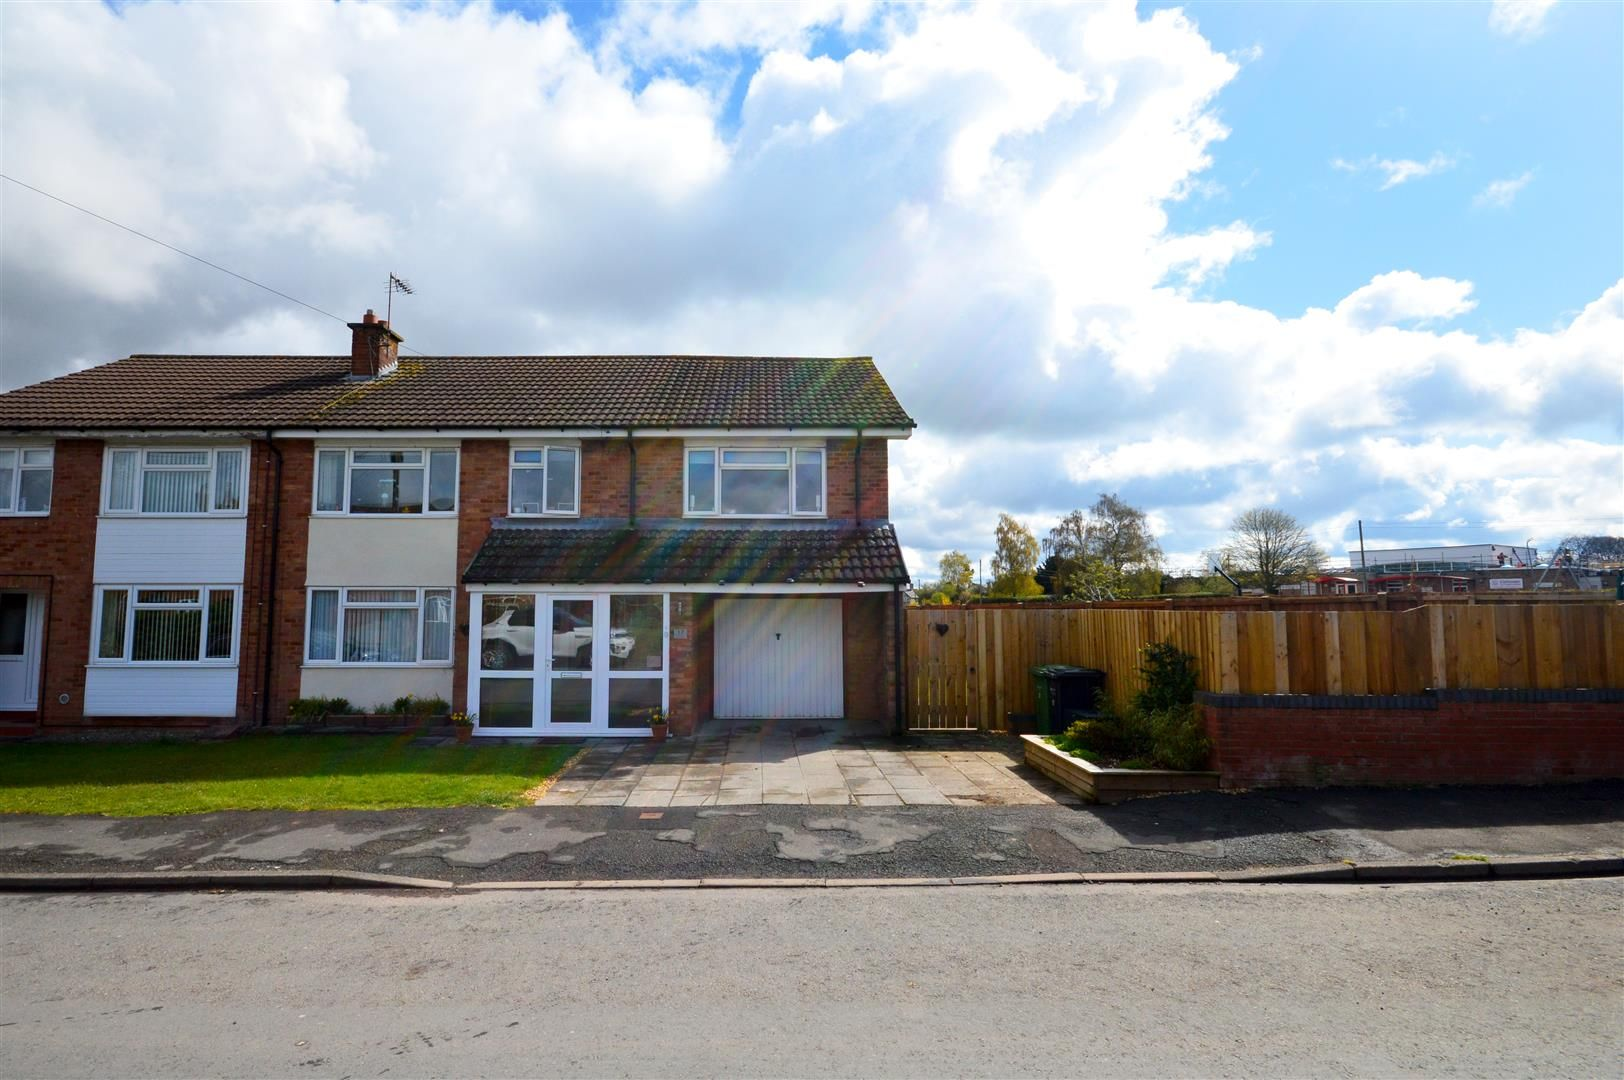 4 bed semi-detached for sale in Clehonger, HR2